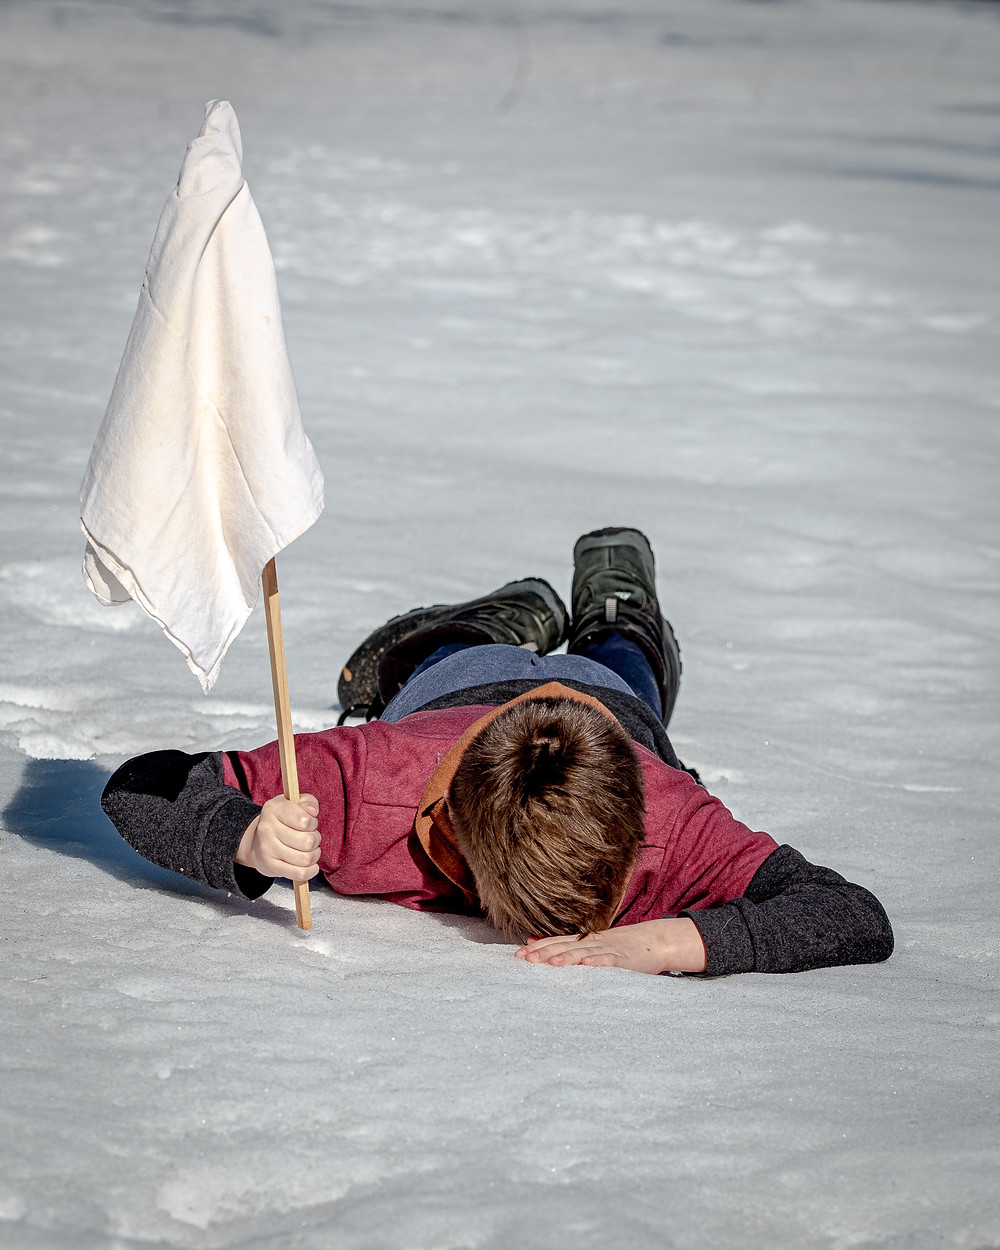 Person lying on snow with a white flag